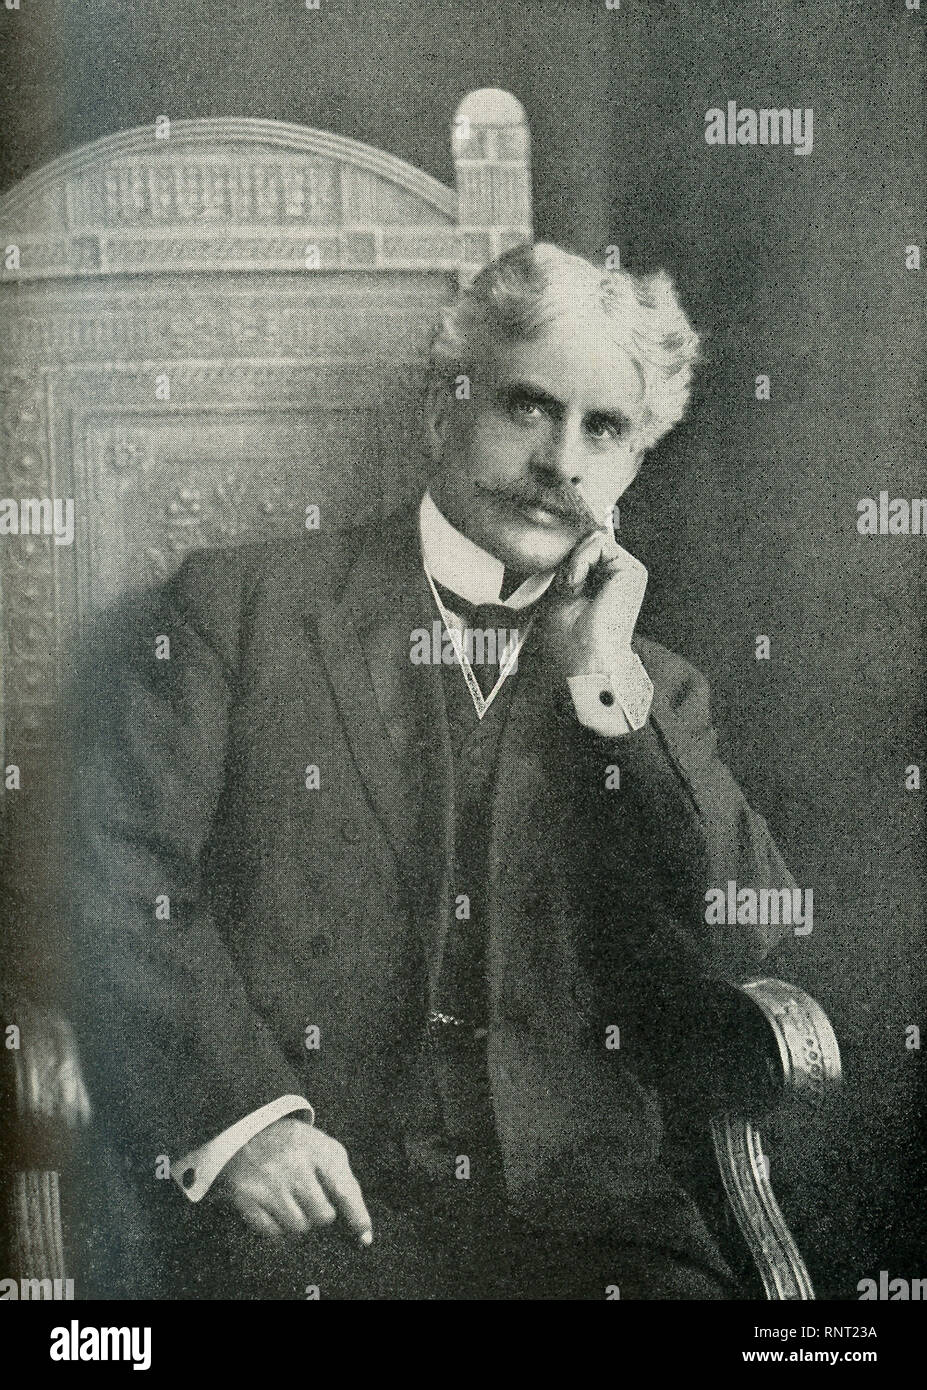 This photo that dates to 1922 shows Sir Robert Laird Borden, a Canadian lawyer and politician. He served as the eighth prime minister of Canada from 1911 to 1920. He guided Canada during World War I. - Stock Image